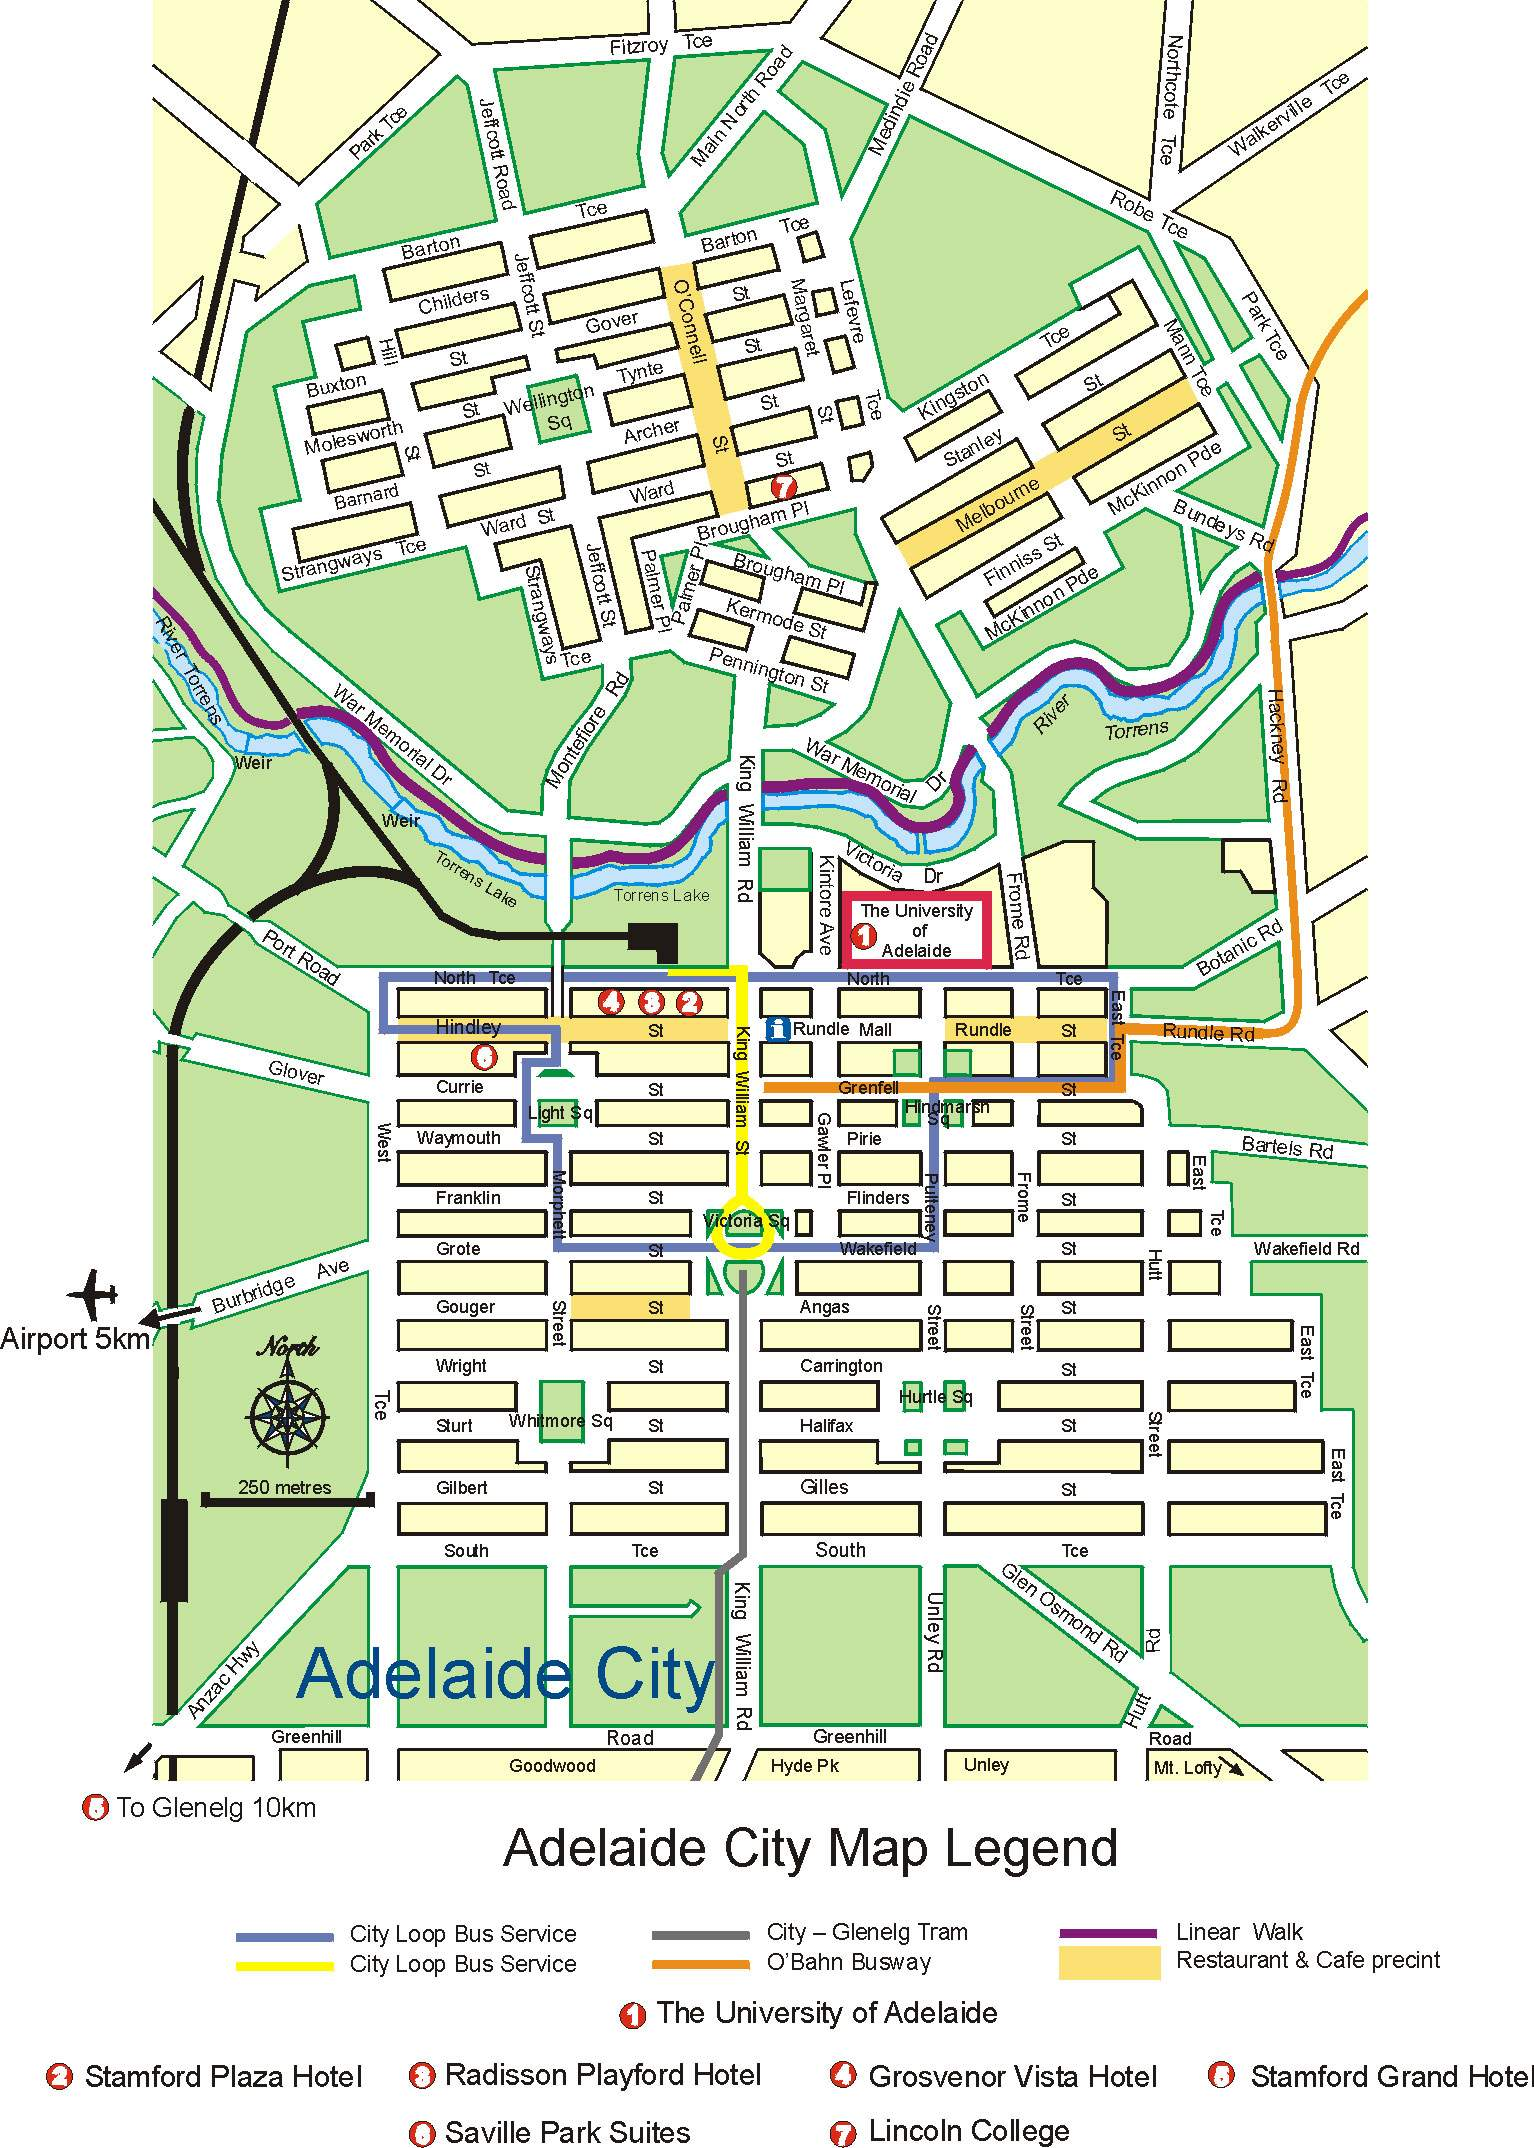 Map Of Adelaide City Large Adelaide Maps for Free Download and Print | High Resolution